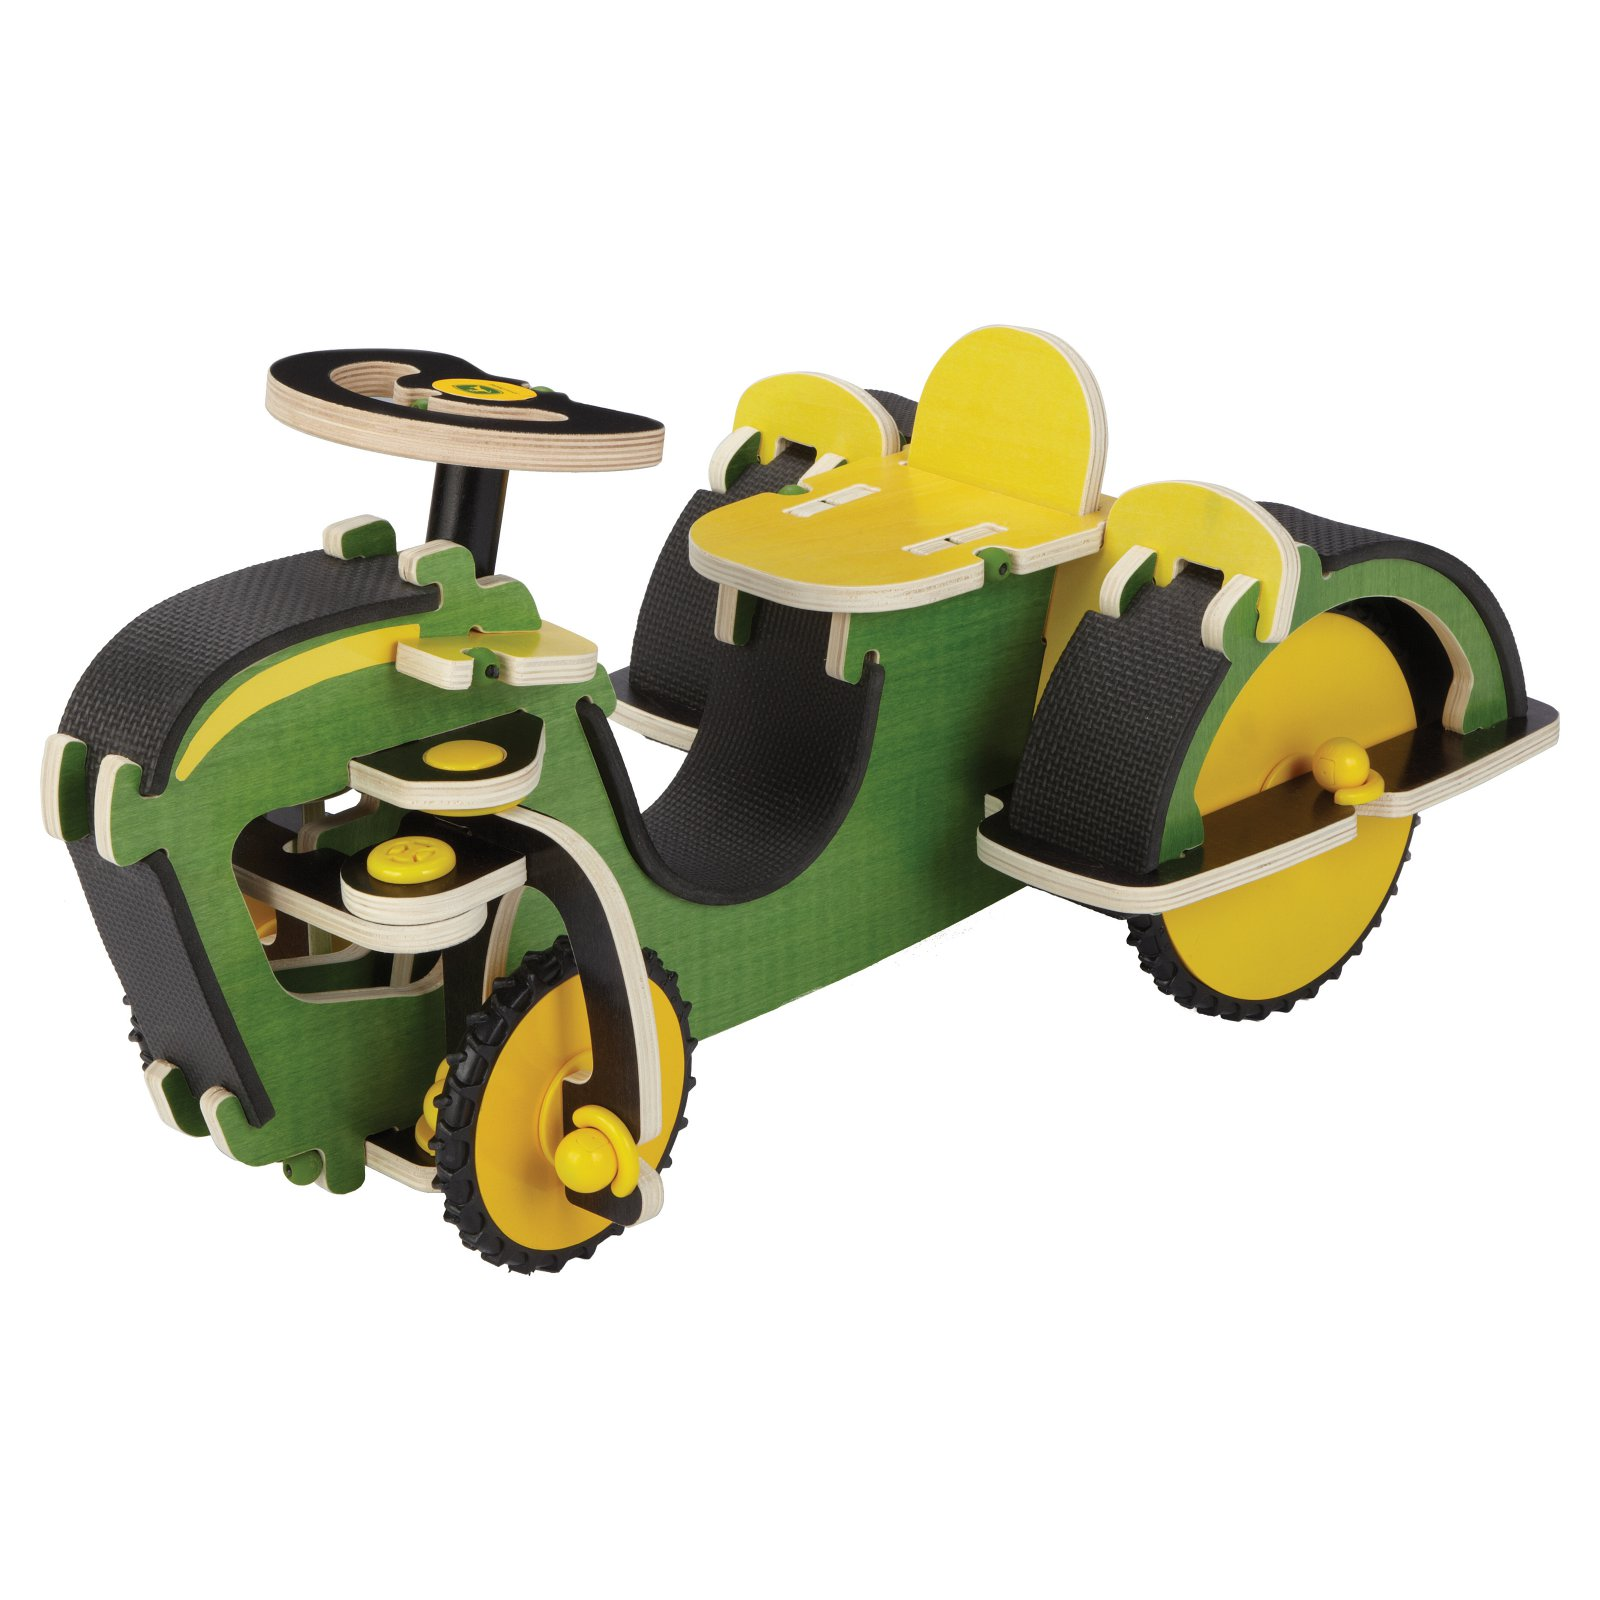 Buildex John Deere Build N Ride Tractor Riding Push Toy